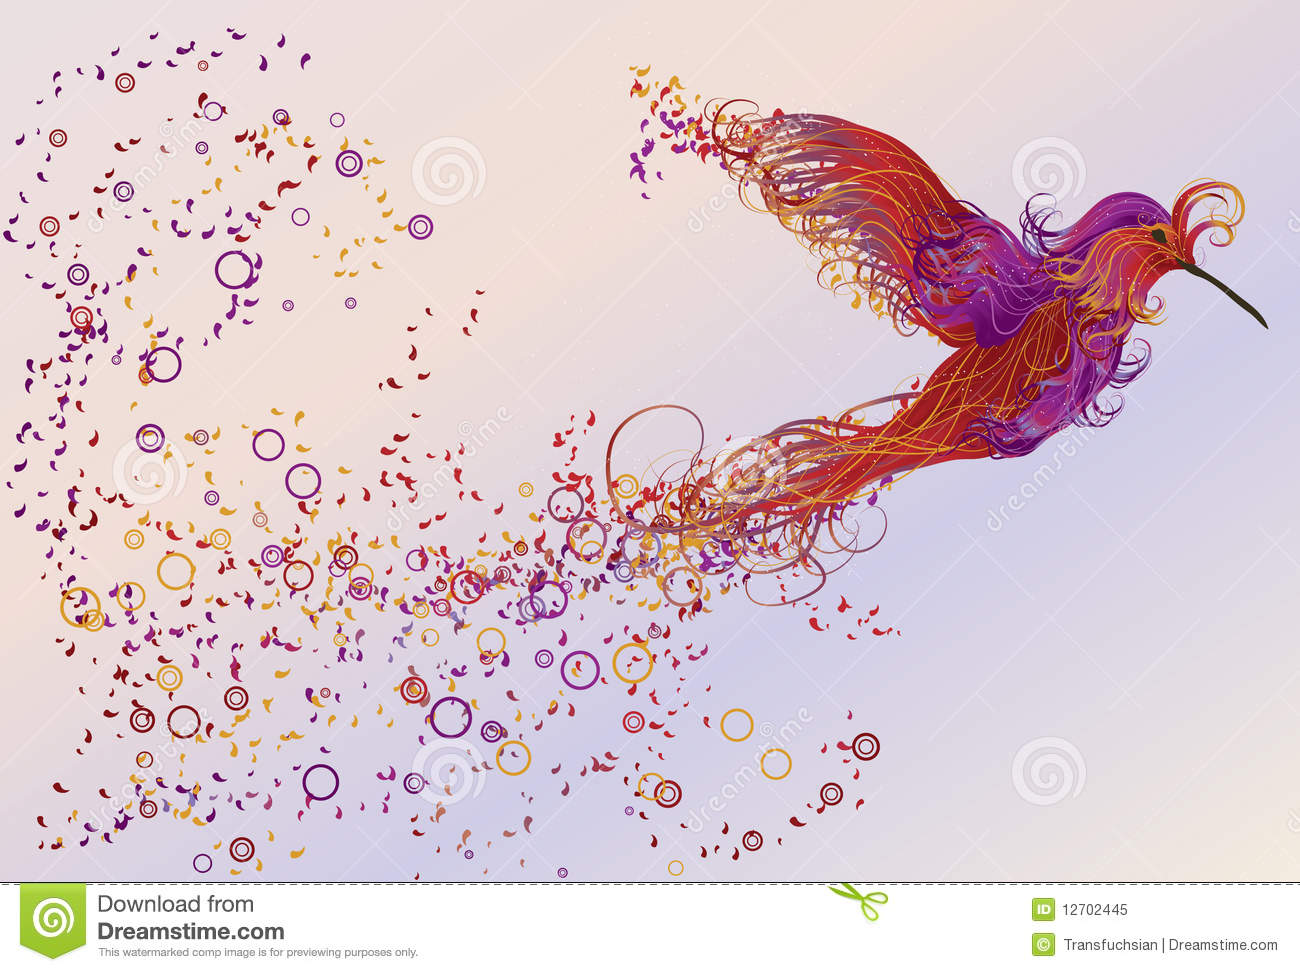 ... Humming Bird Illustration Royalty Free Stock Photo - Image: 12702445